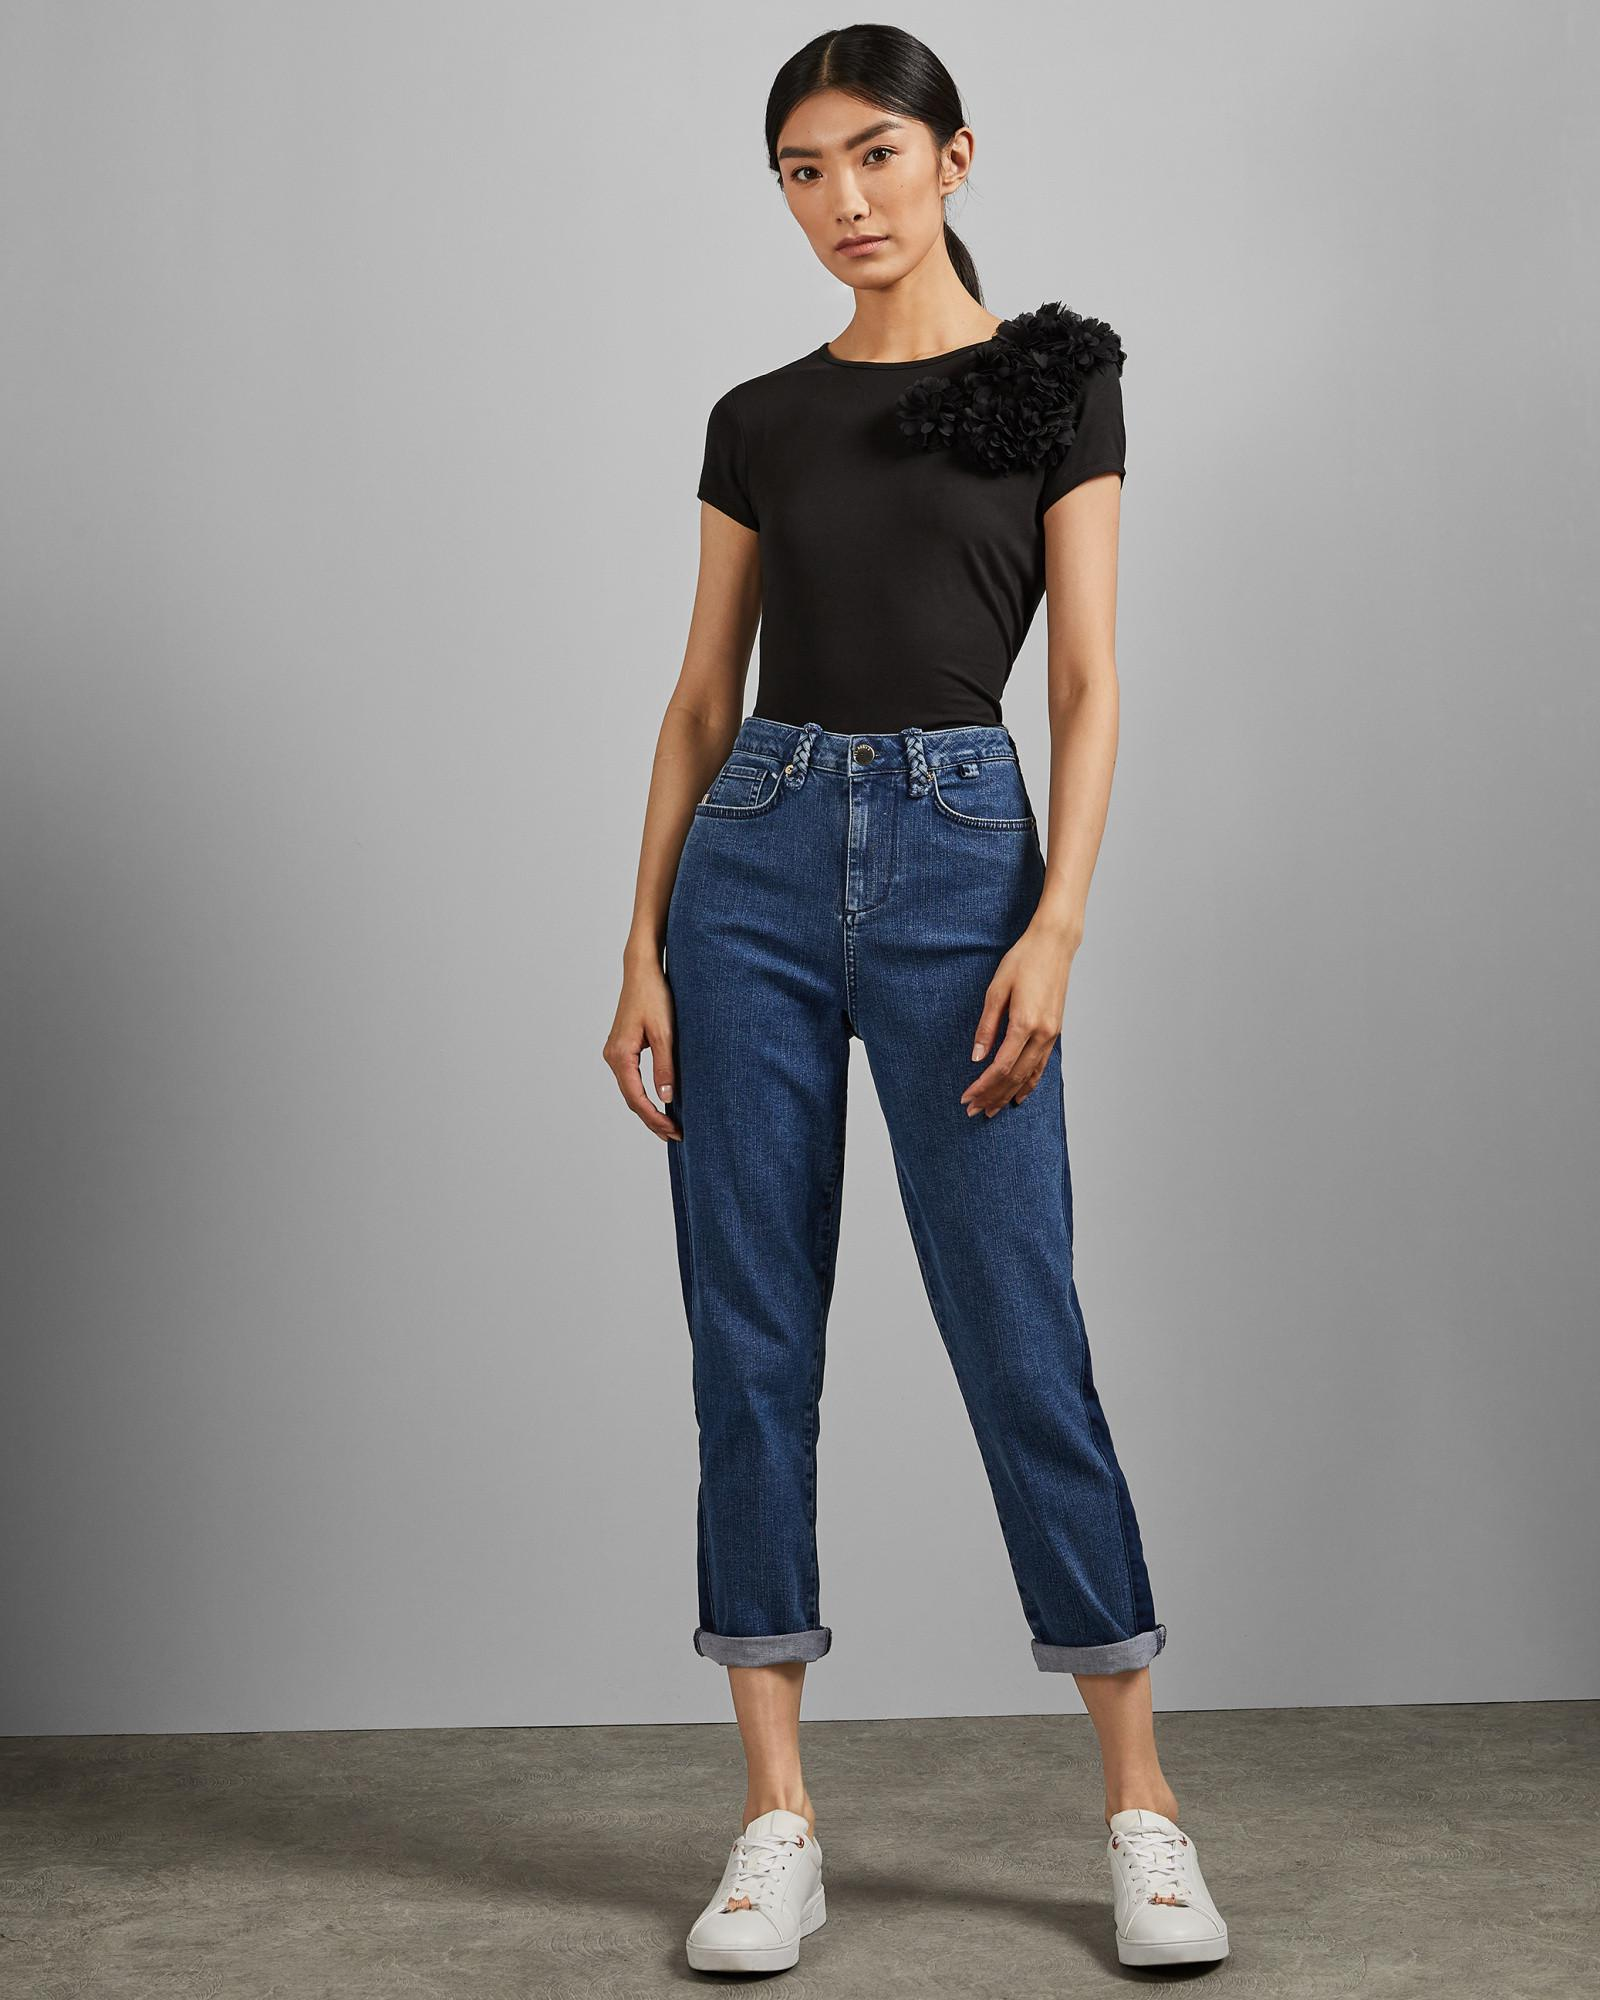 9793a0bbd Lyst - Ted Baker Embellished Fitted T-shirt in Black